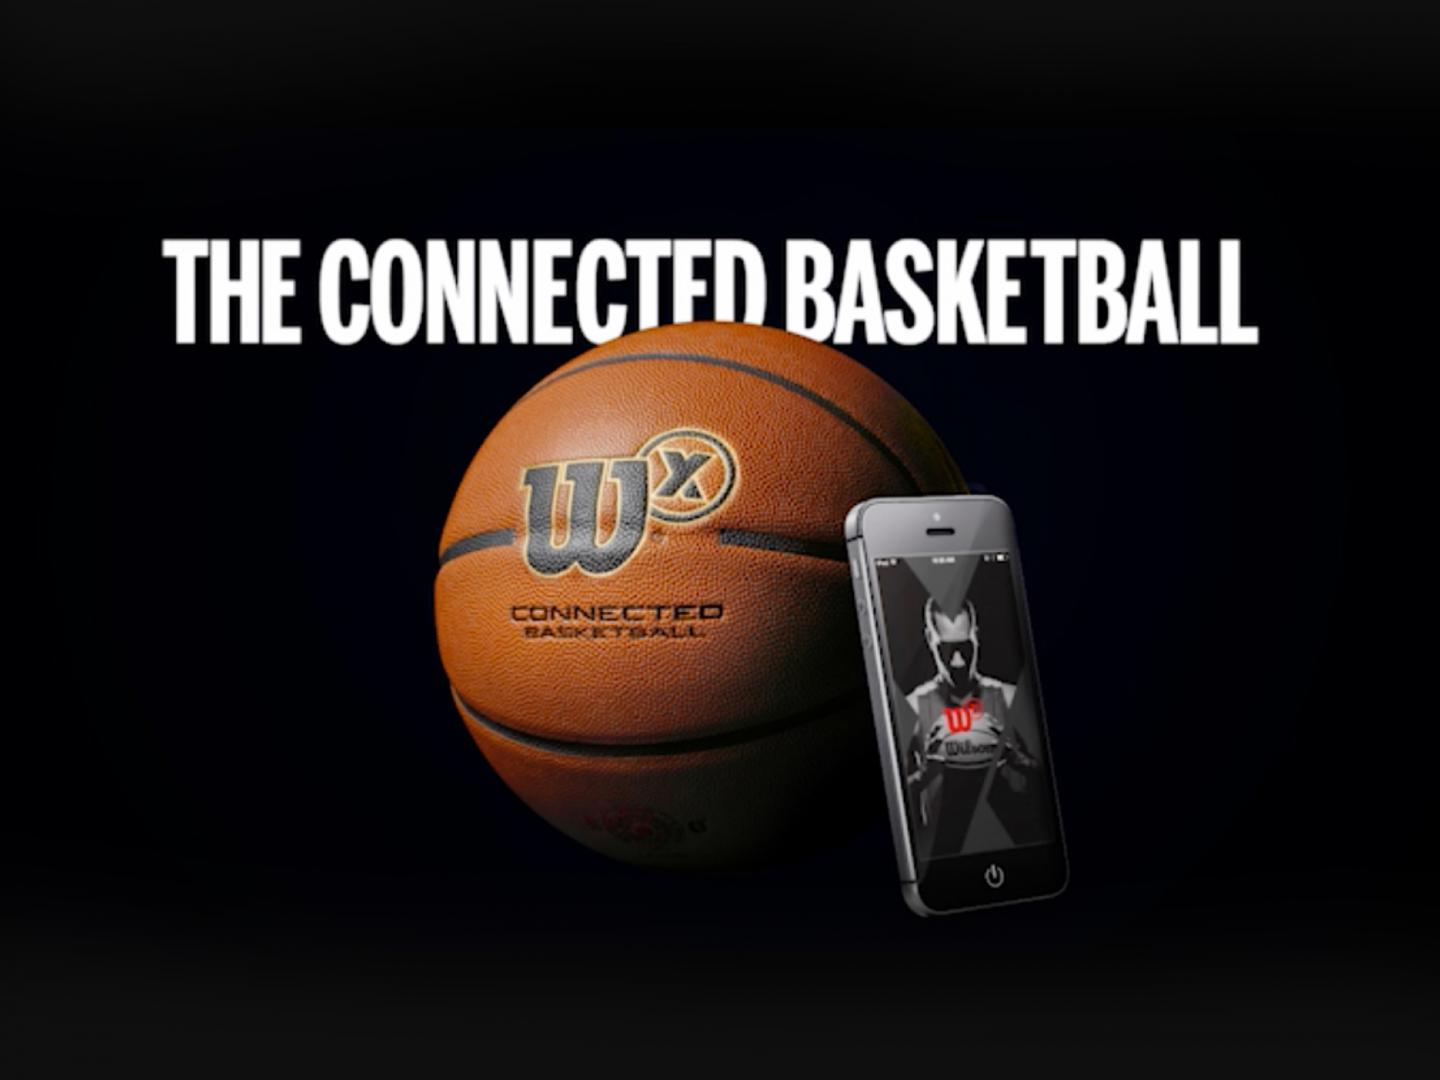 Wilson X Connected Basketball Thumbnail